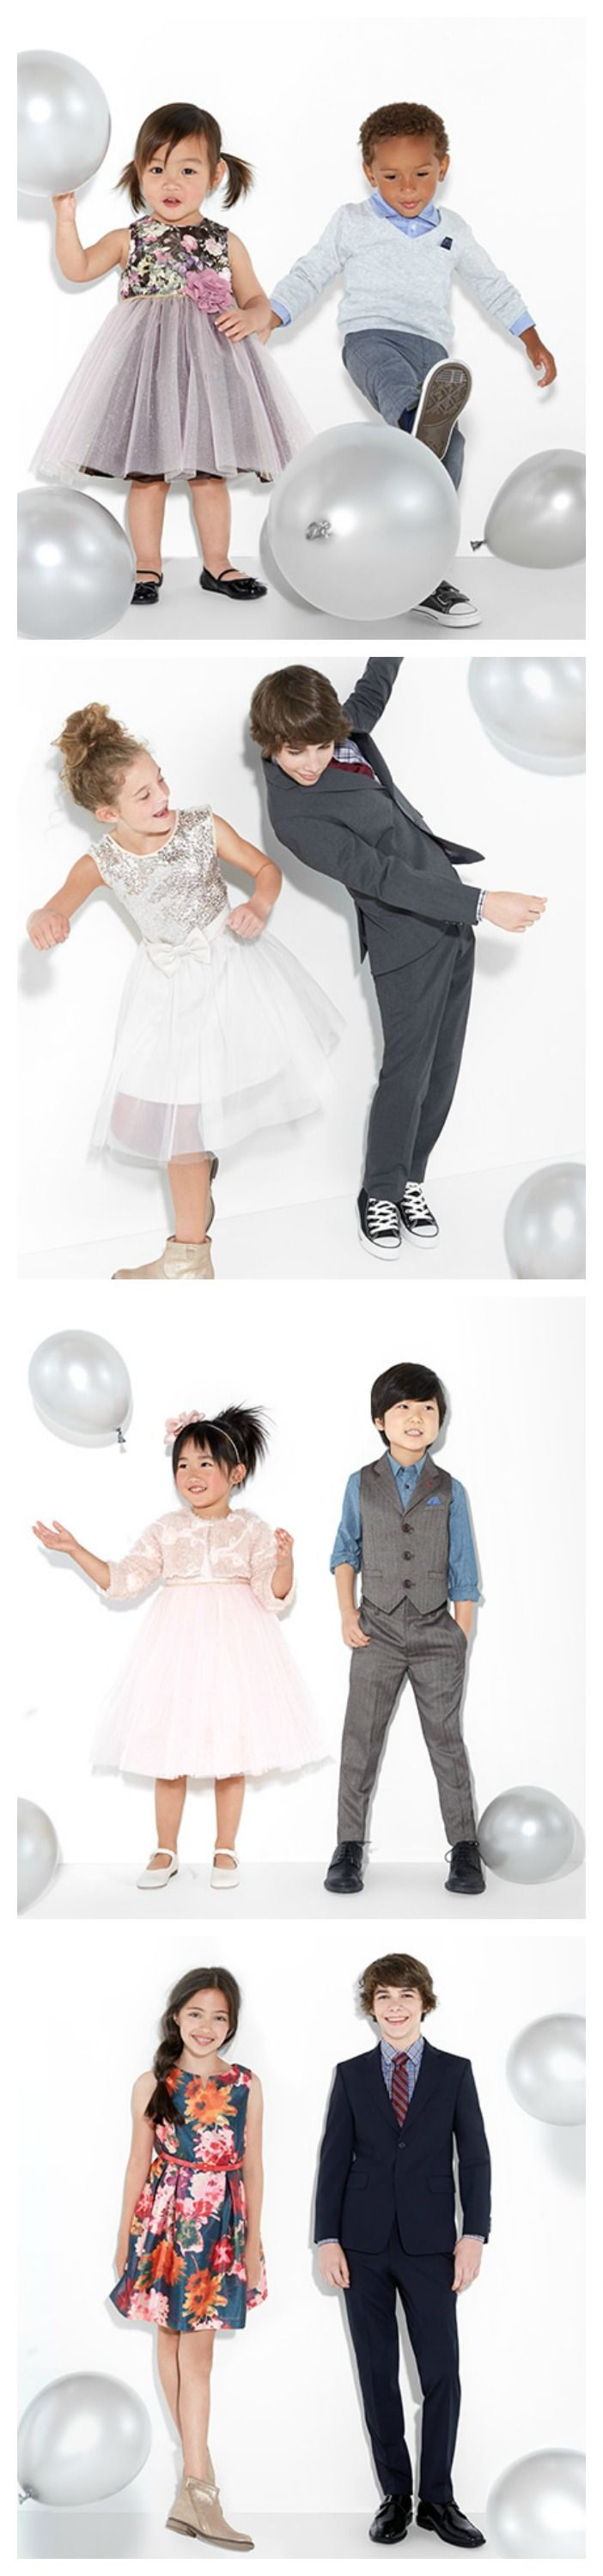 How to dress your kids for a special occasion.